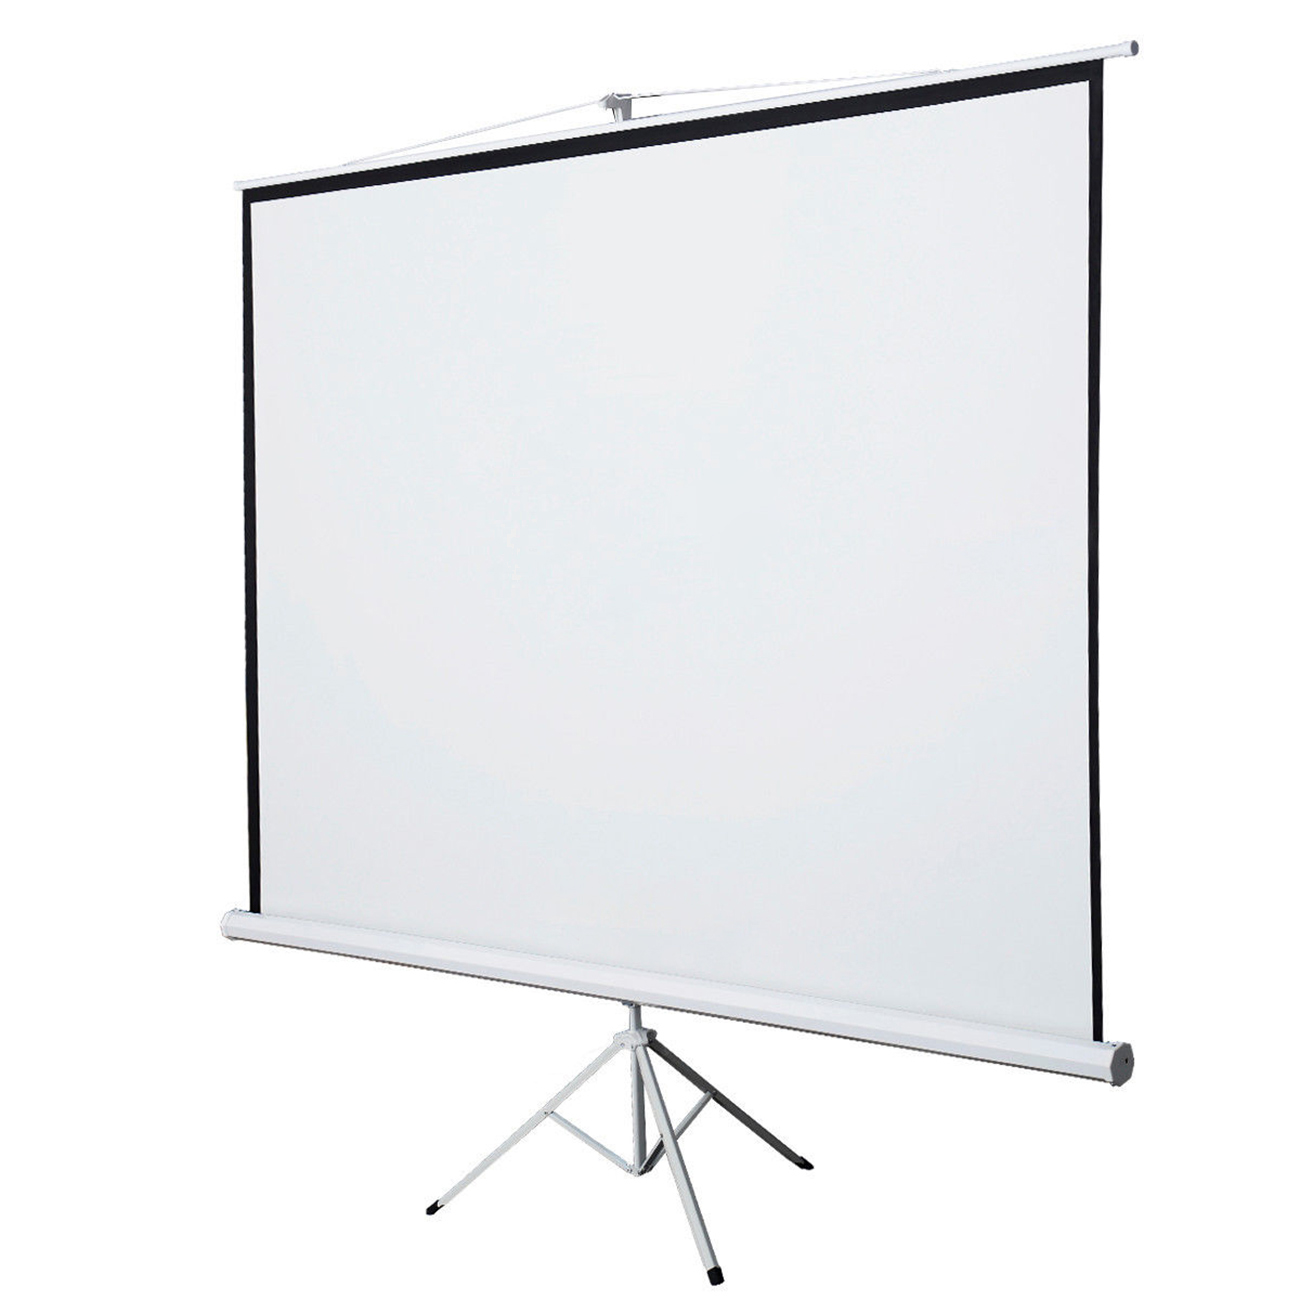 White 120 Quot 4 3 Portable Tripod Projector Projection Screen